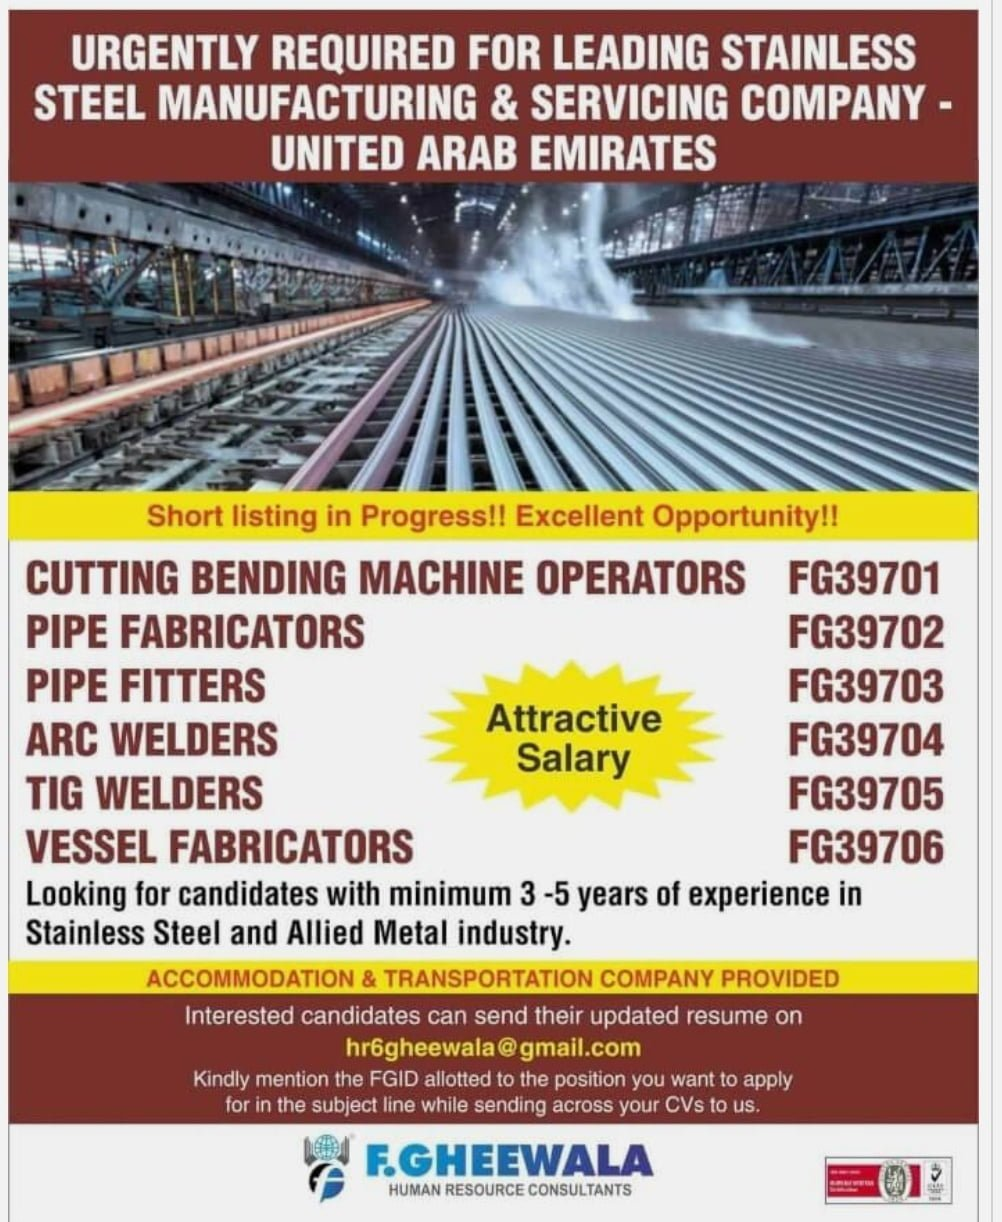 URGENTLY REQUIRED FOR LEADING STAINLESS STEEL MANUFACTURING & SERVICING COMPANY – UNITED ARAB EMIRATES